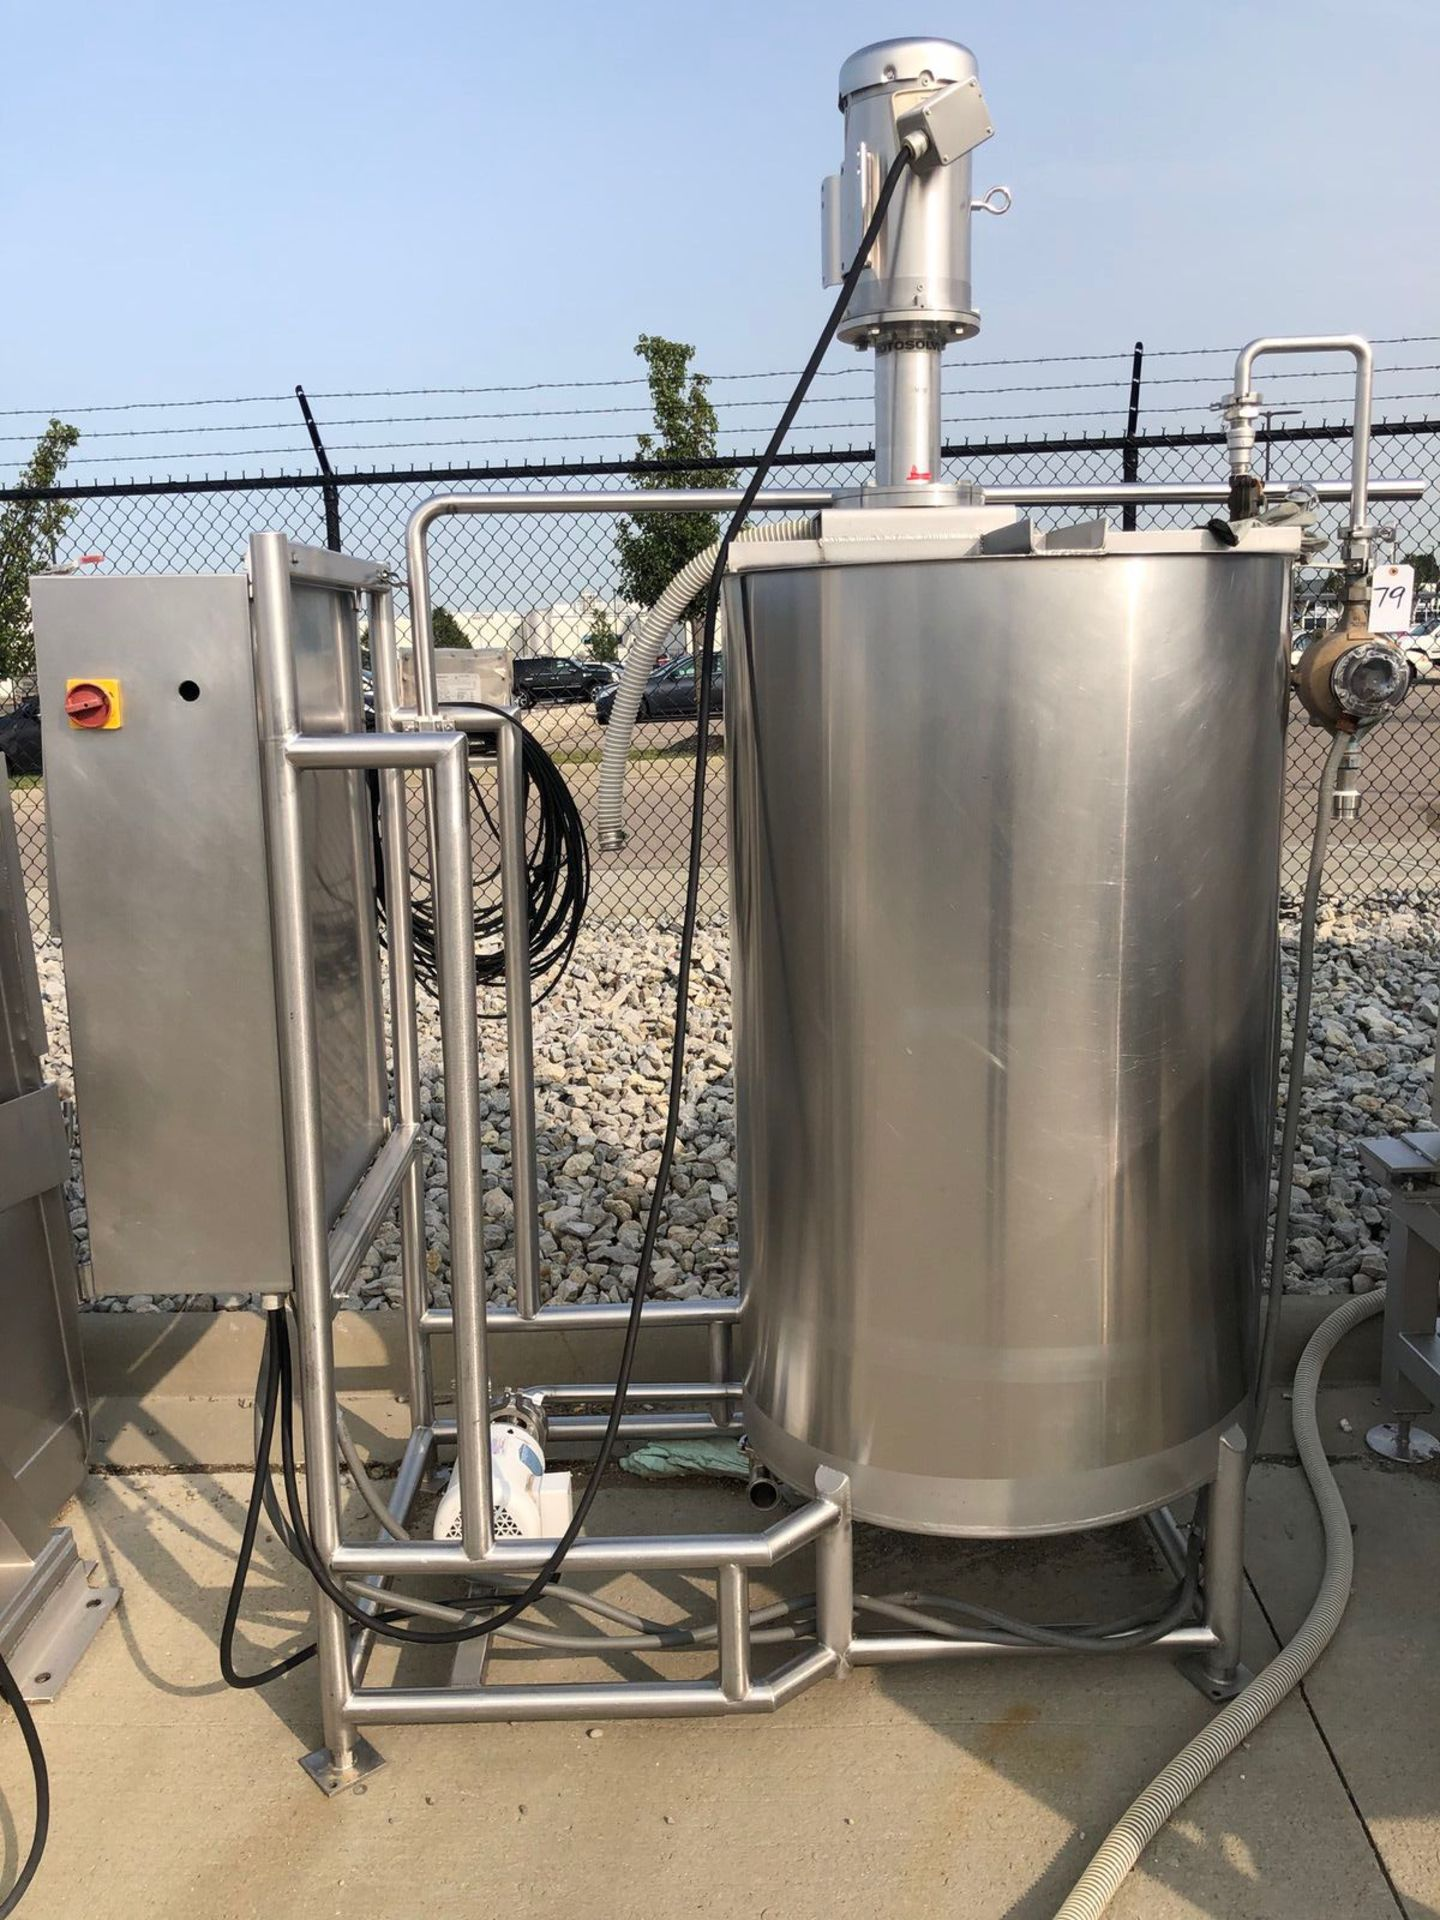 Stainelss Steel Brine Mixing Tank with Rotosolver Type Agitator and C | Rig Fee: $150 See Full Desc - Image 2 of 3